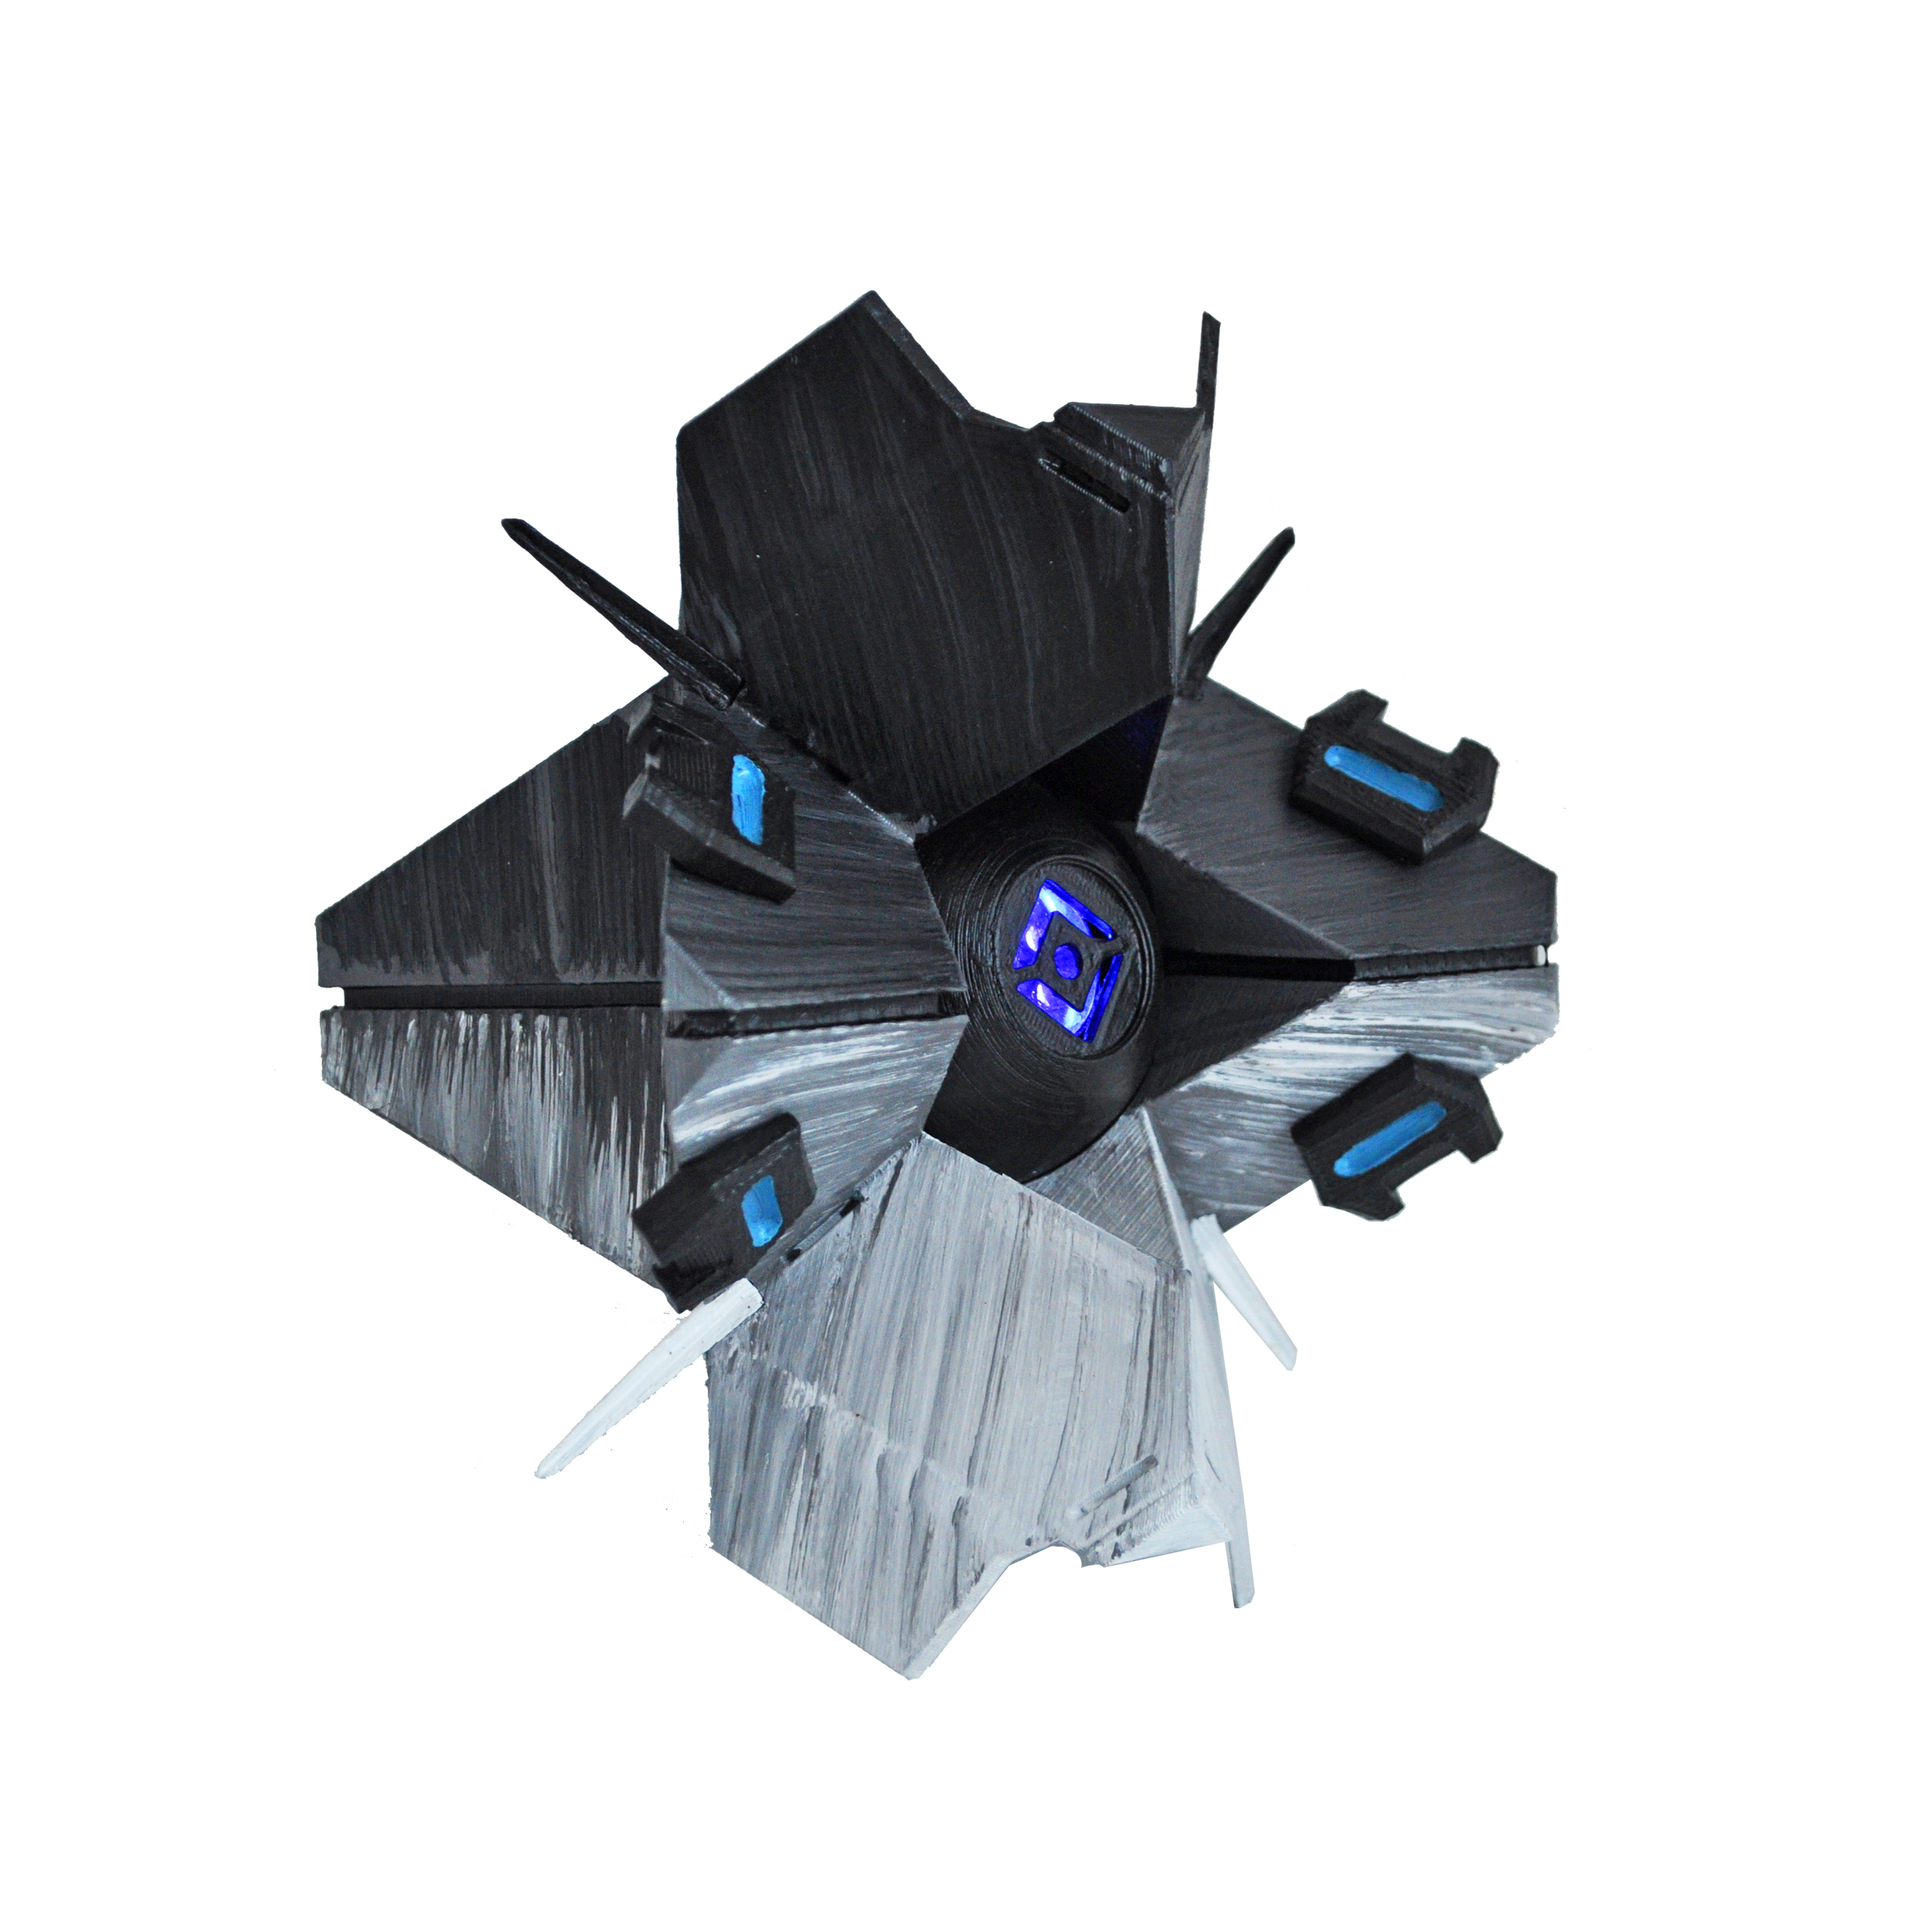 Full Sized Ghost Consumed Shell Costumes From Destiny Star Wars Overwatch Designedby3d Com Art Reference Ghost Star Wars